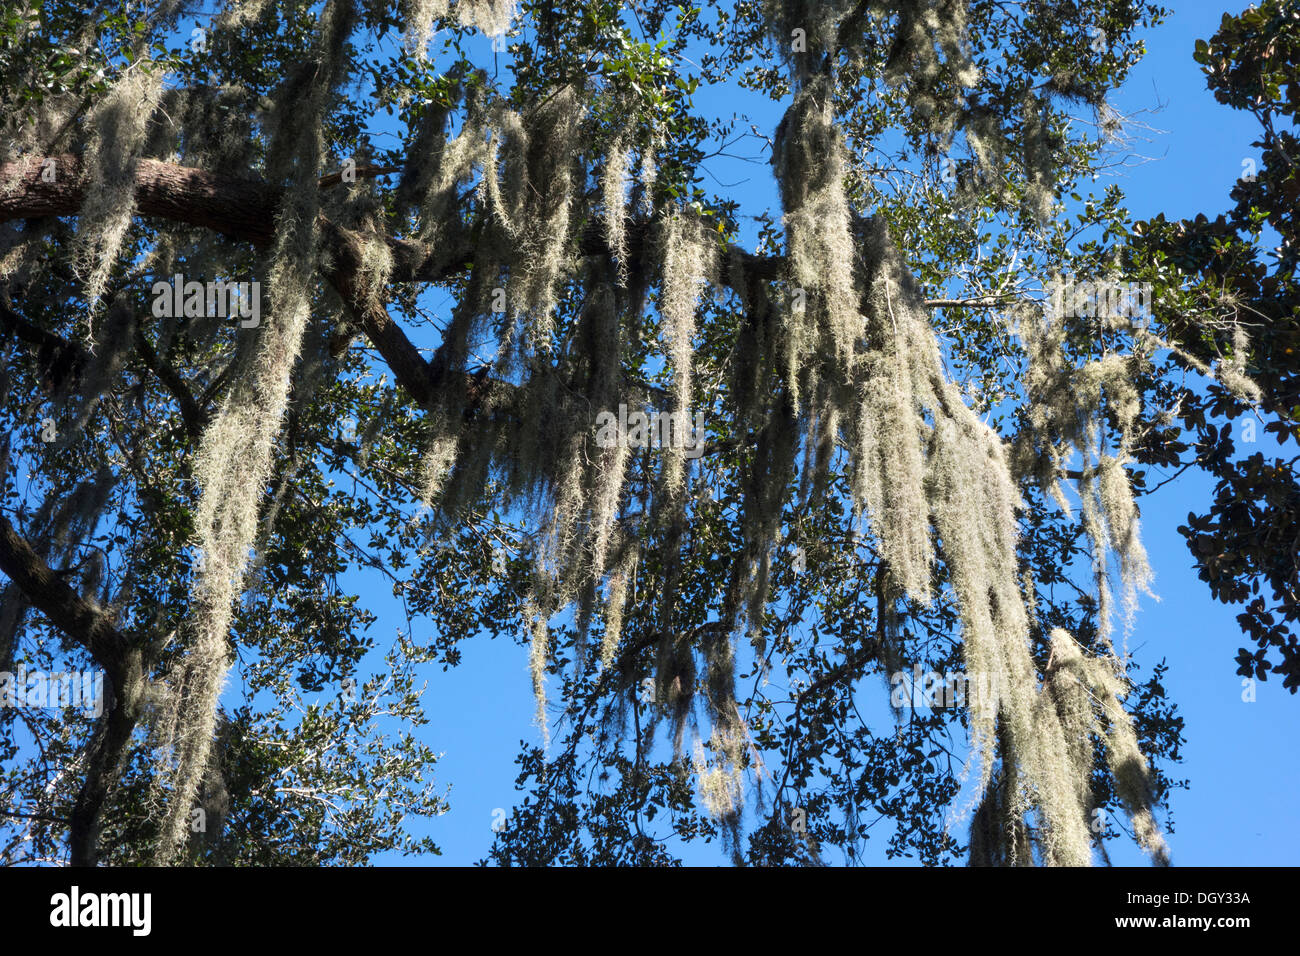 Spanish moss (Tillandsia usneoides) on a Southern Live Oak in Central Florida, USA - Stock Image